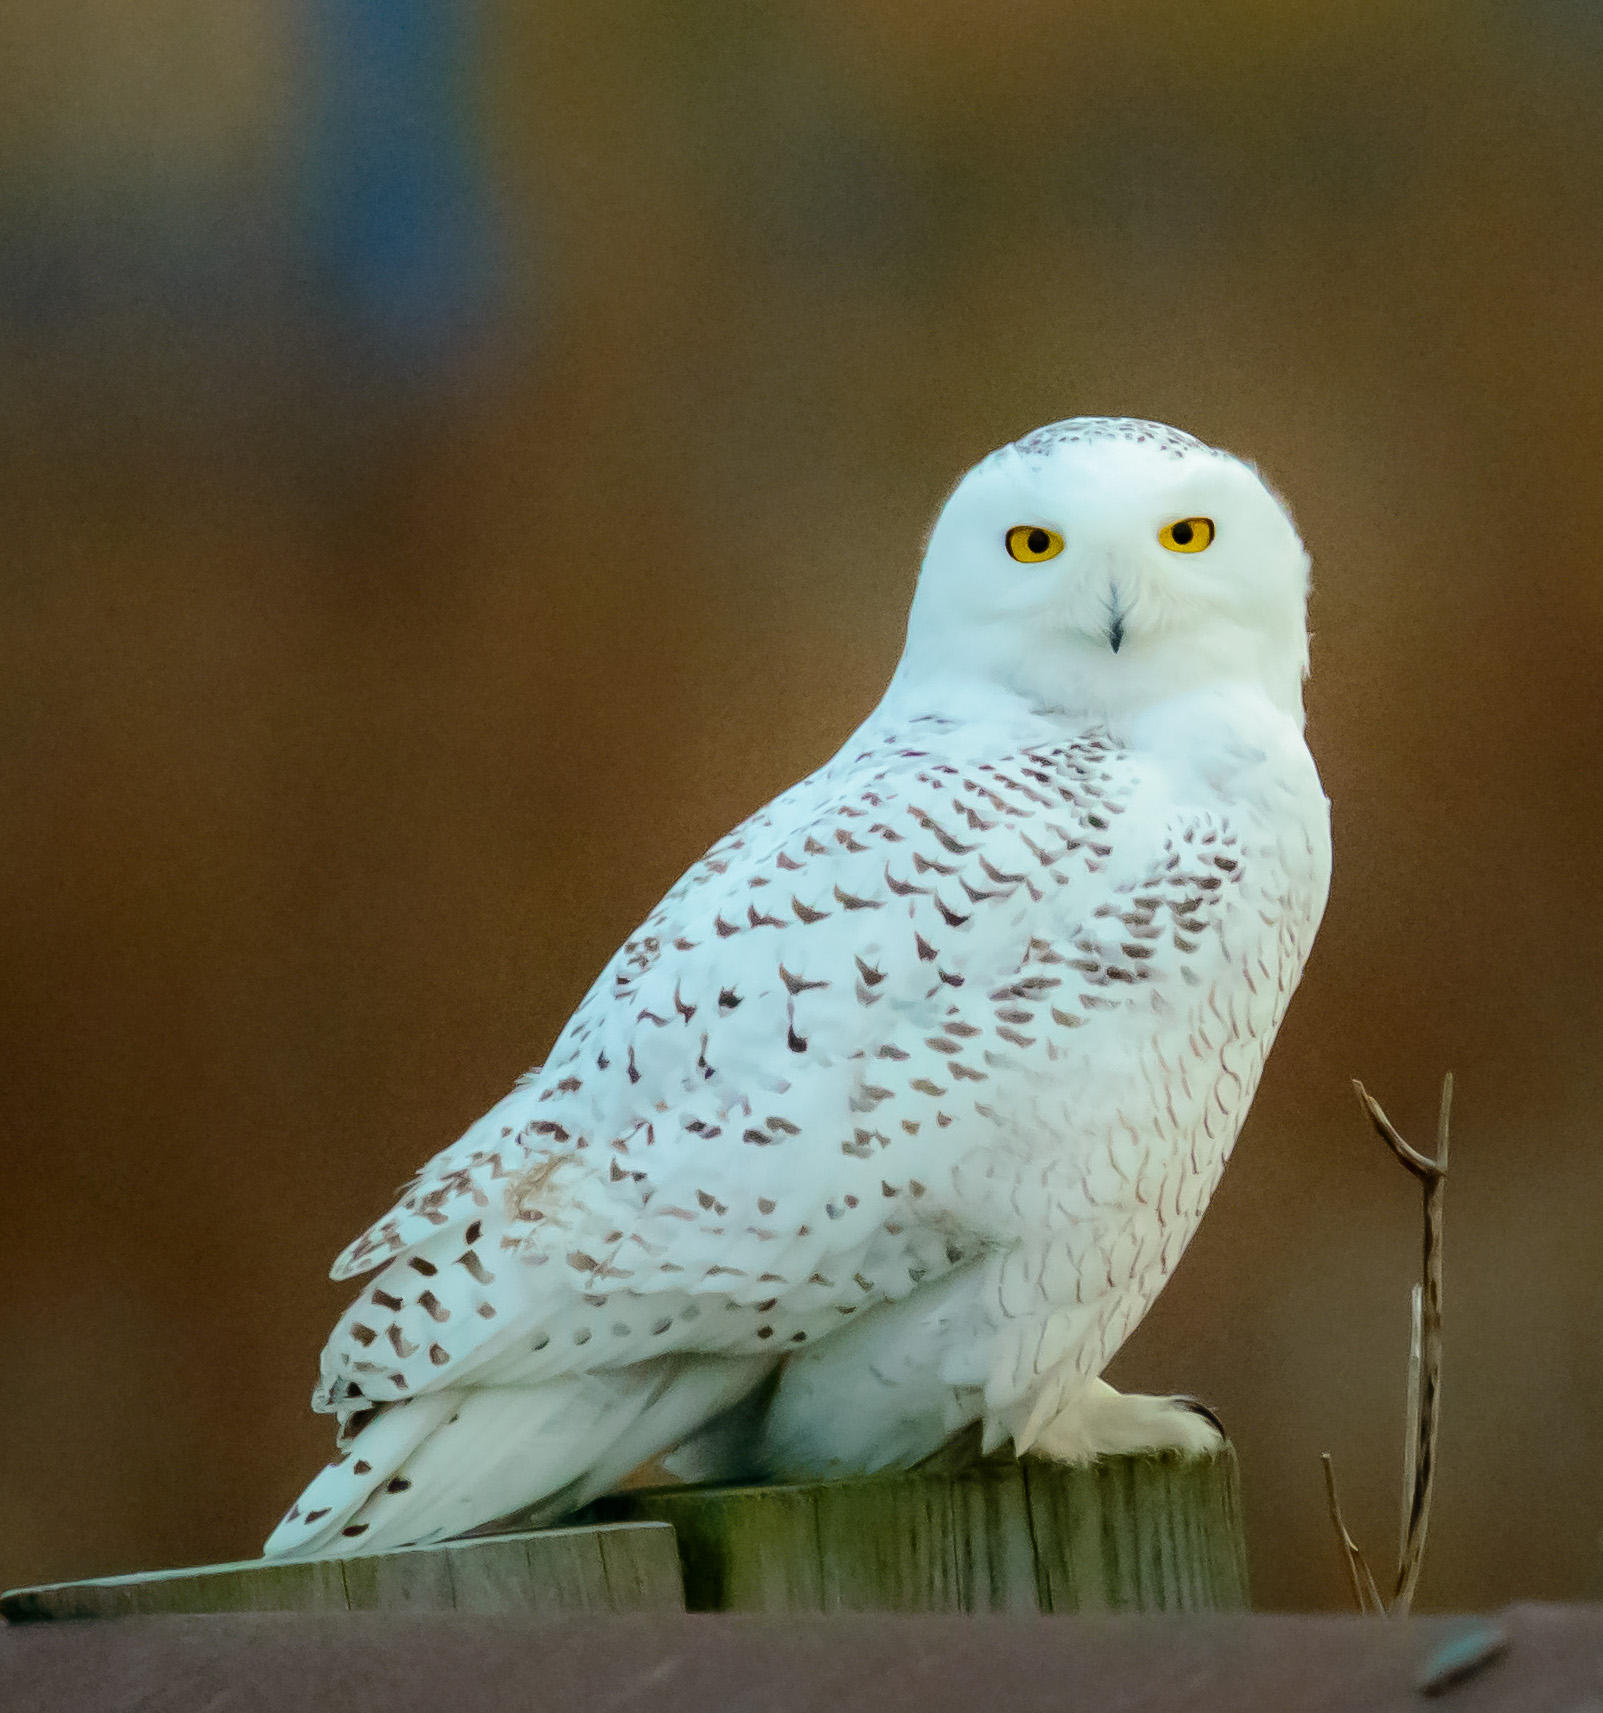 Snowy Owl Sightings Up In RI | Rhode Island Public Radio